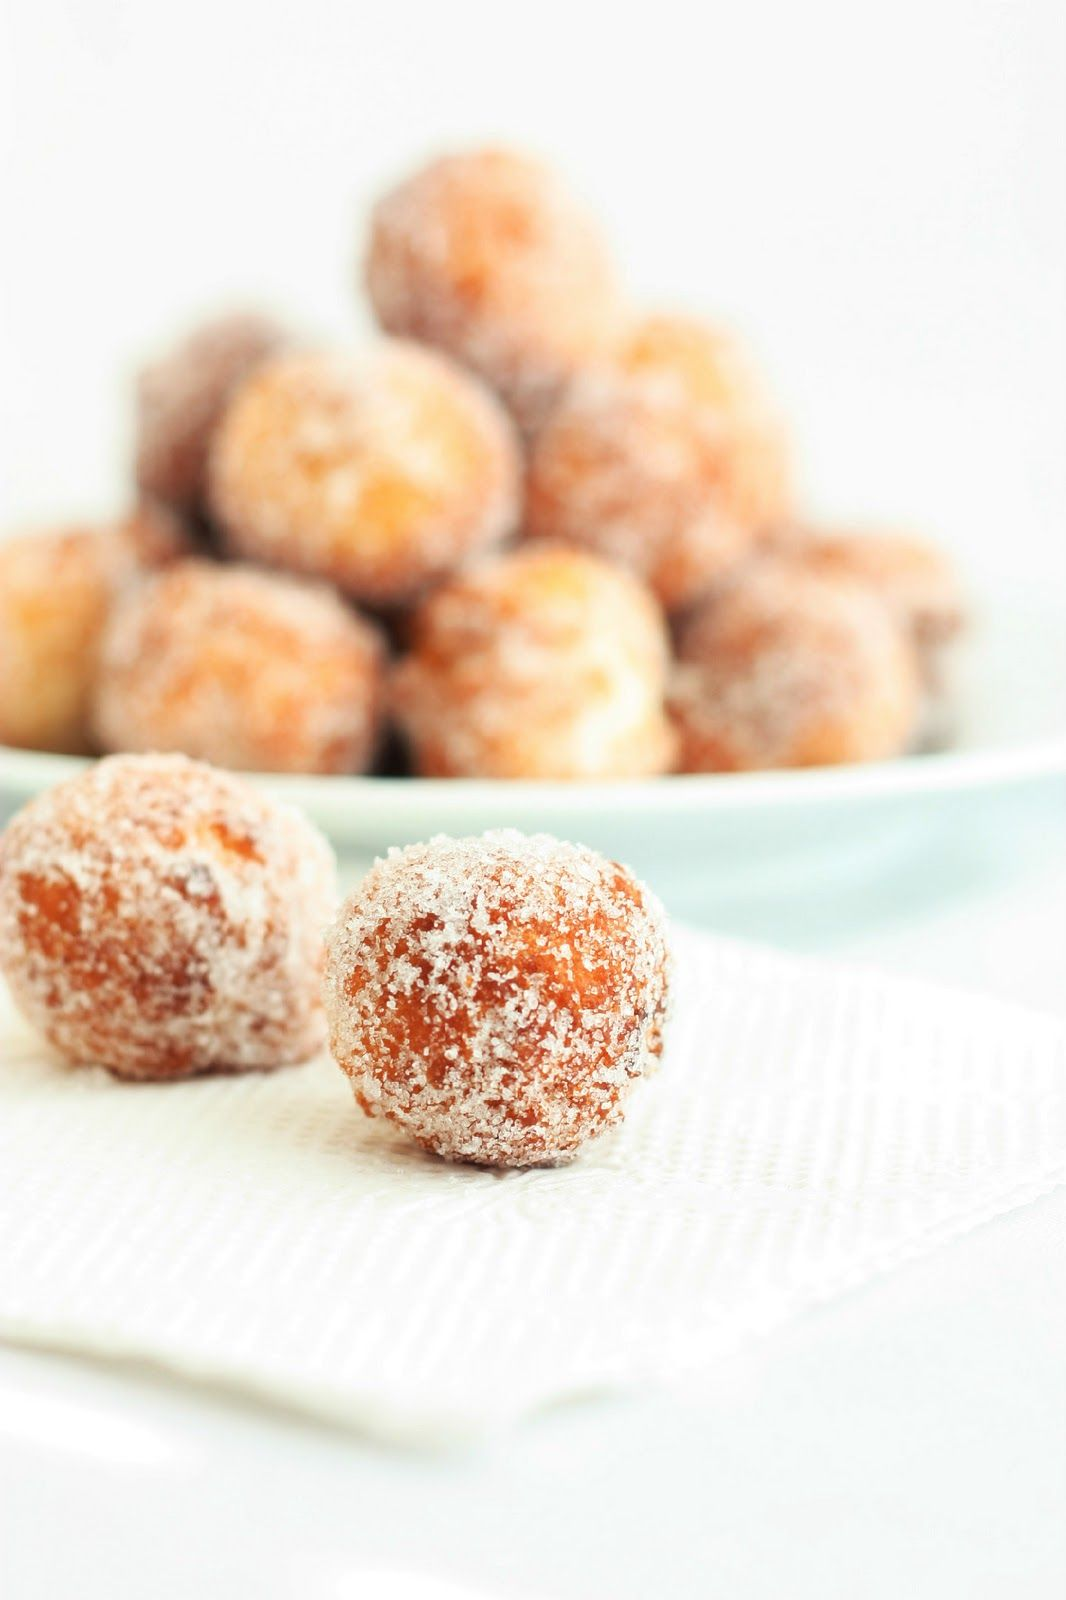 Donuts Made From Scratch In 15 Minutes So Easy And Delicious This Recipe Is